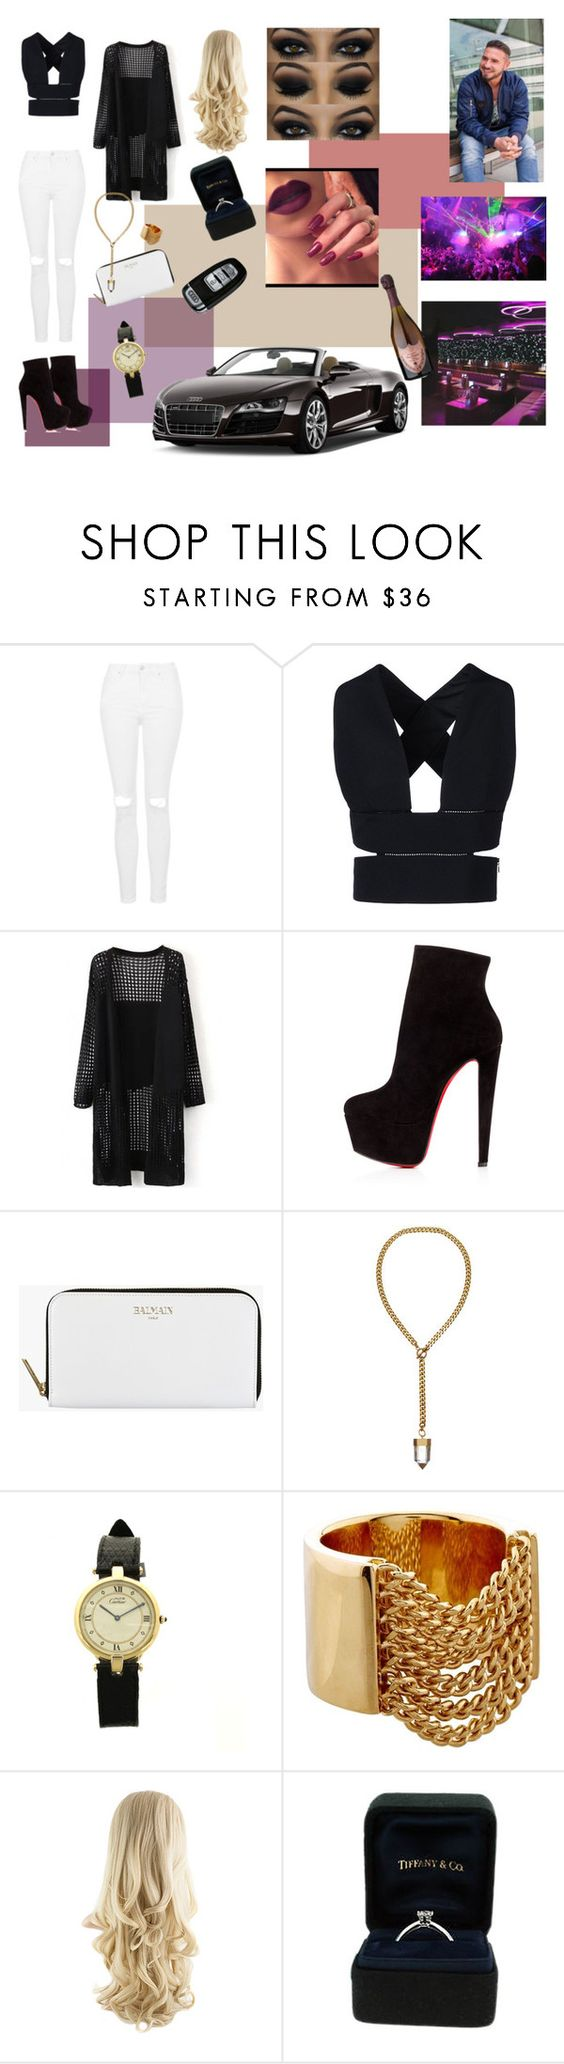 """""""it's my Birthday."""" by l4-l0ve ❤ liked on Polyvore featuring Topshop, STELLA McCARTNEY, Christian Louboutin, Balmain, Cartier, Spyder, Libertine, Tiffany & Co., Dom Pérignon and women's clothing"""